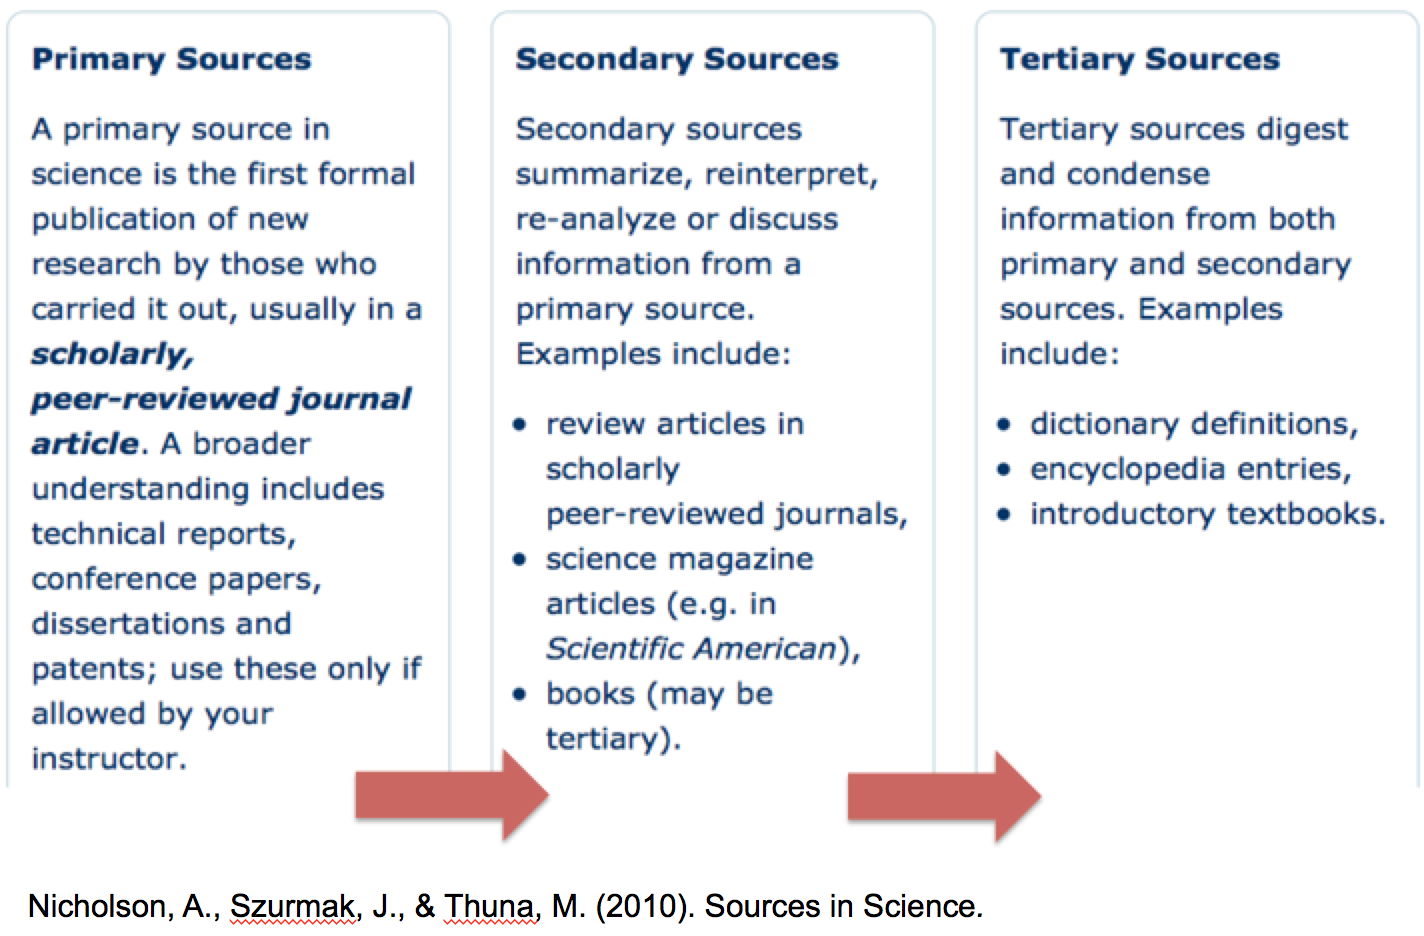 sources of secondary information include